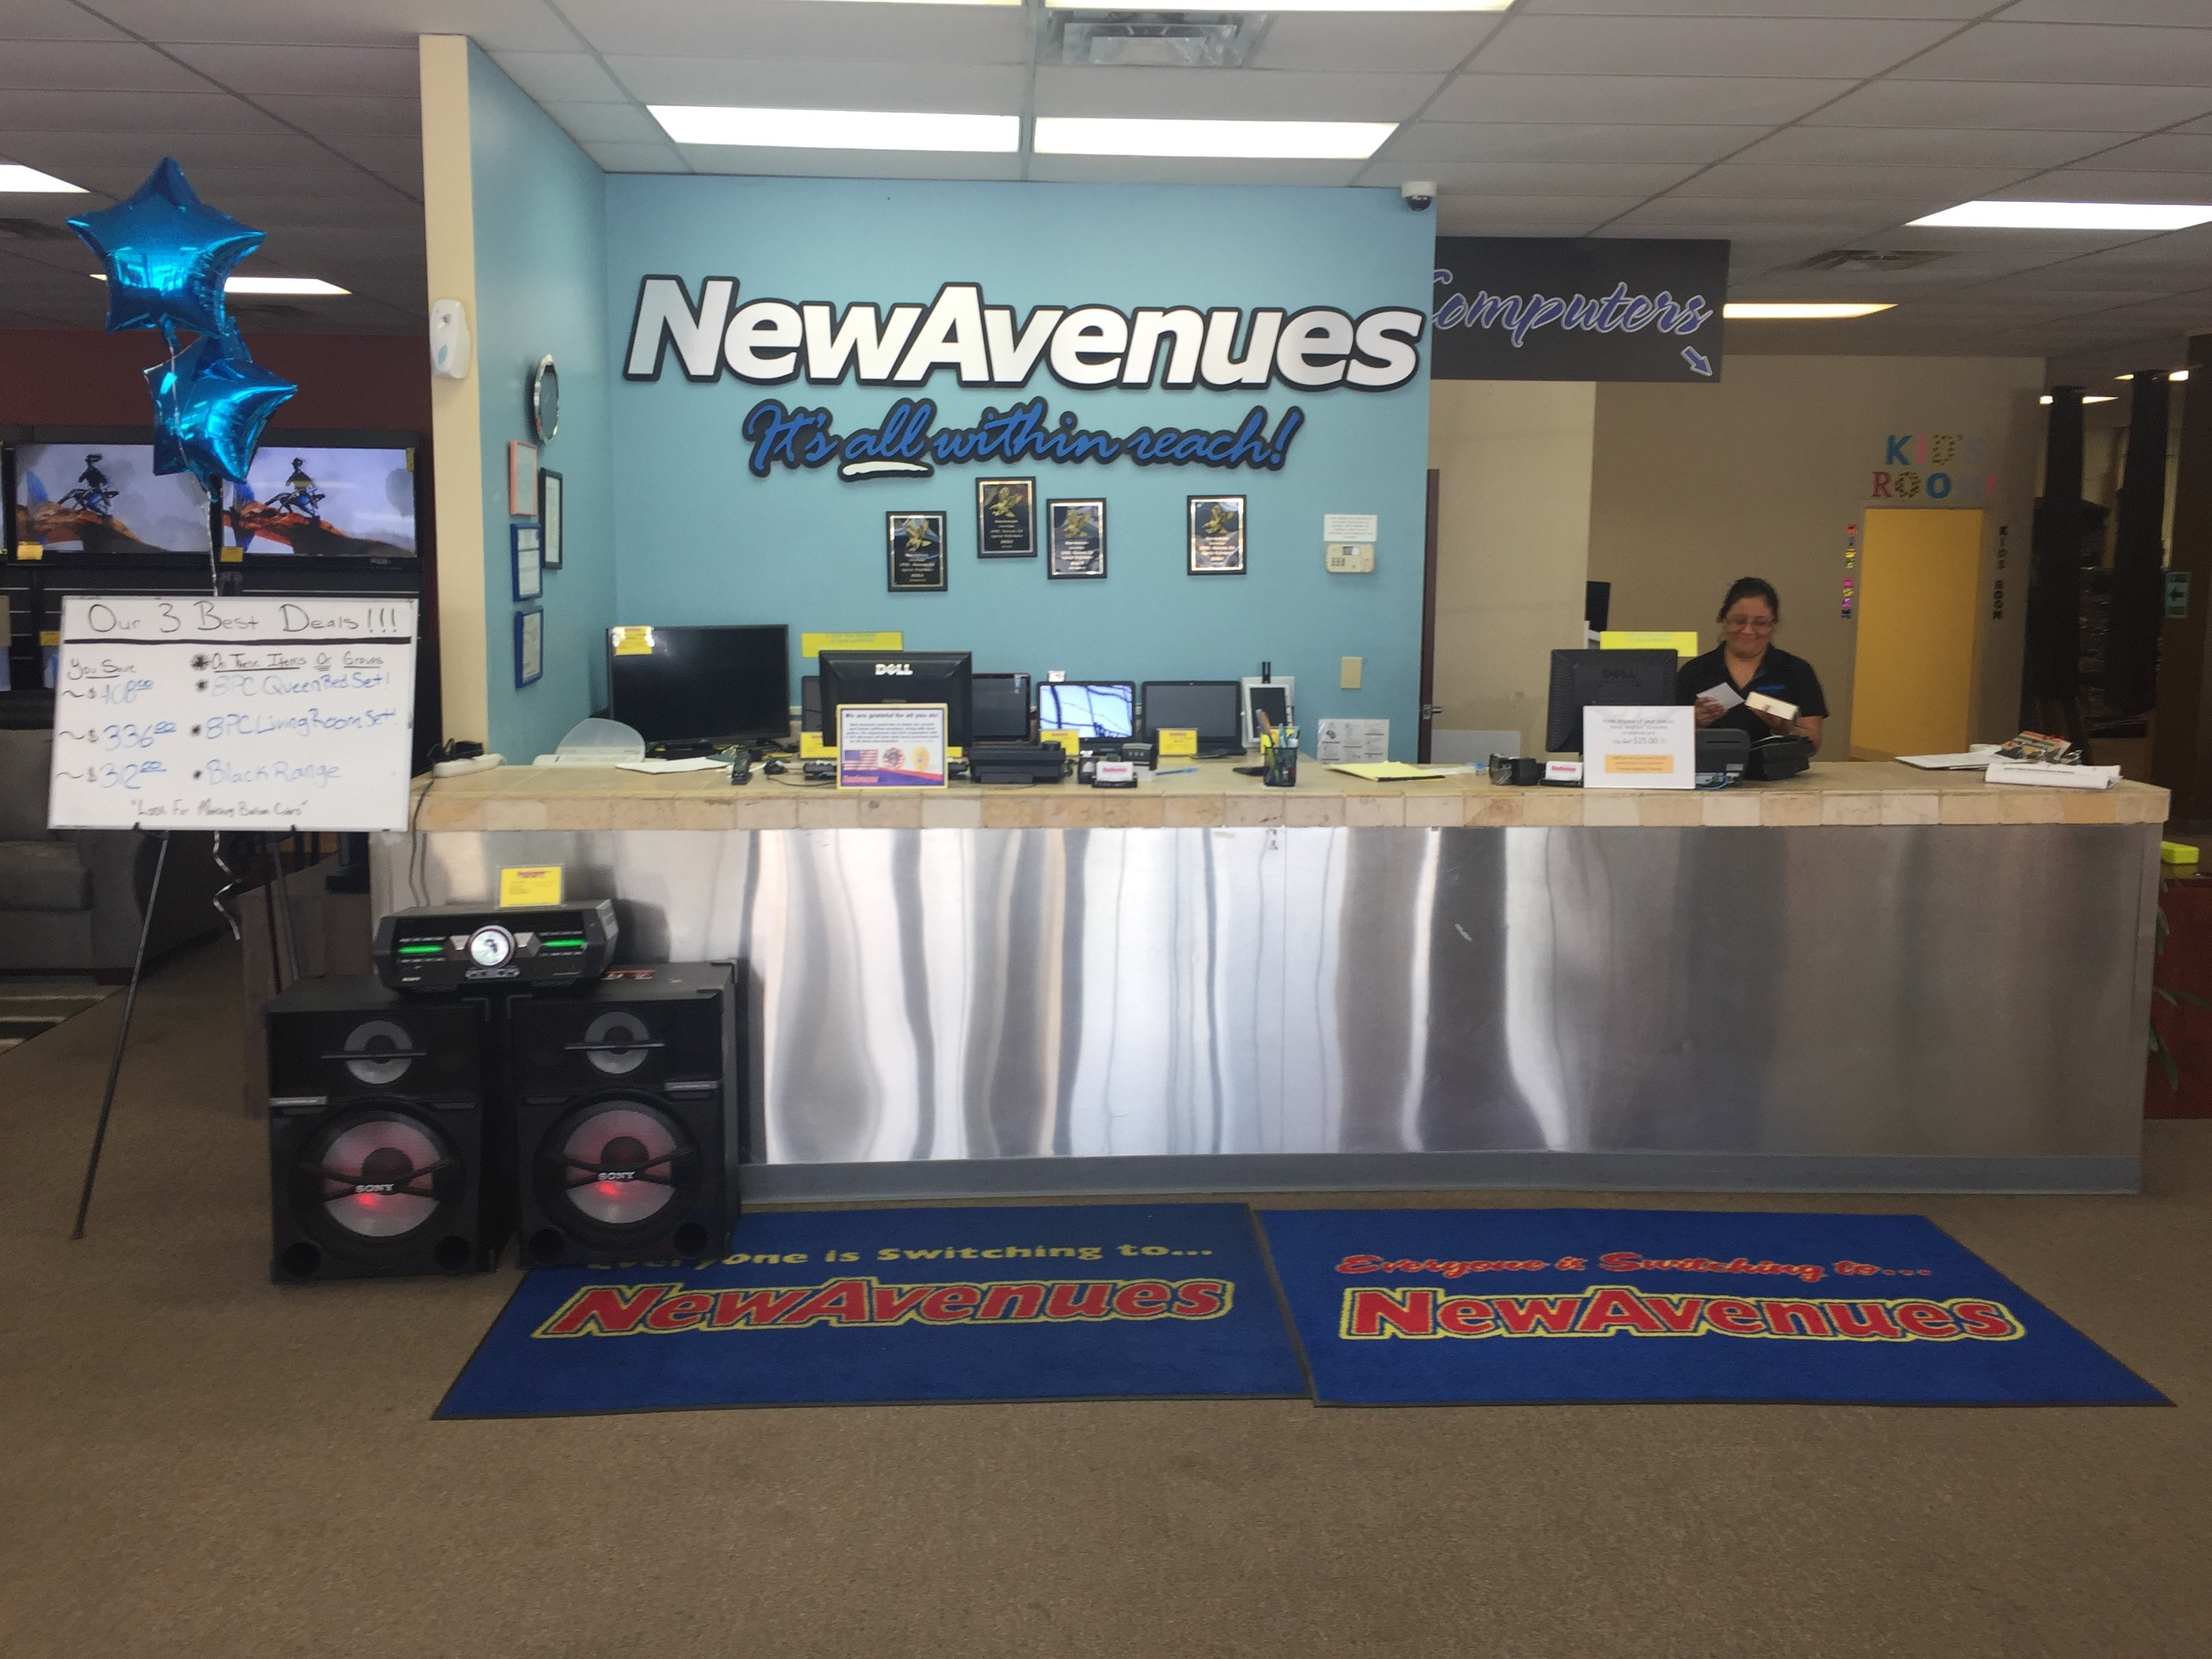 New Avenues - Closed image 1